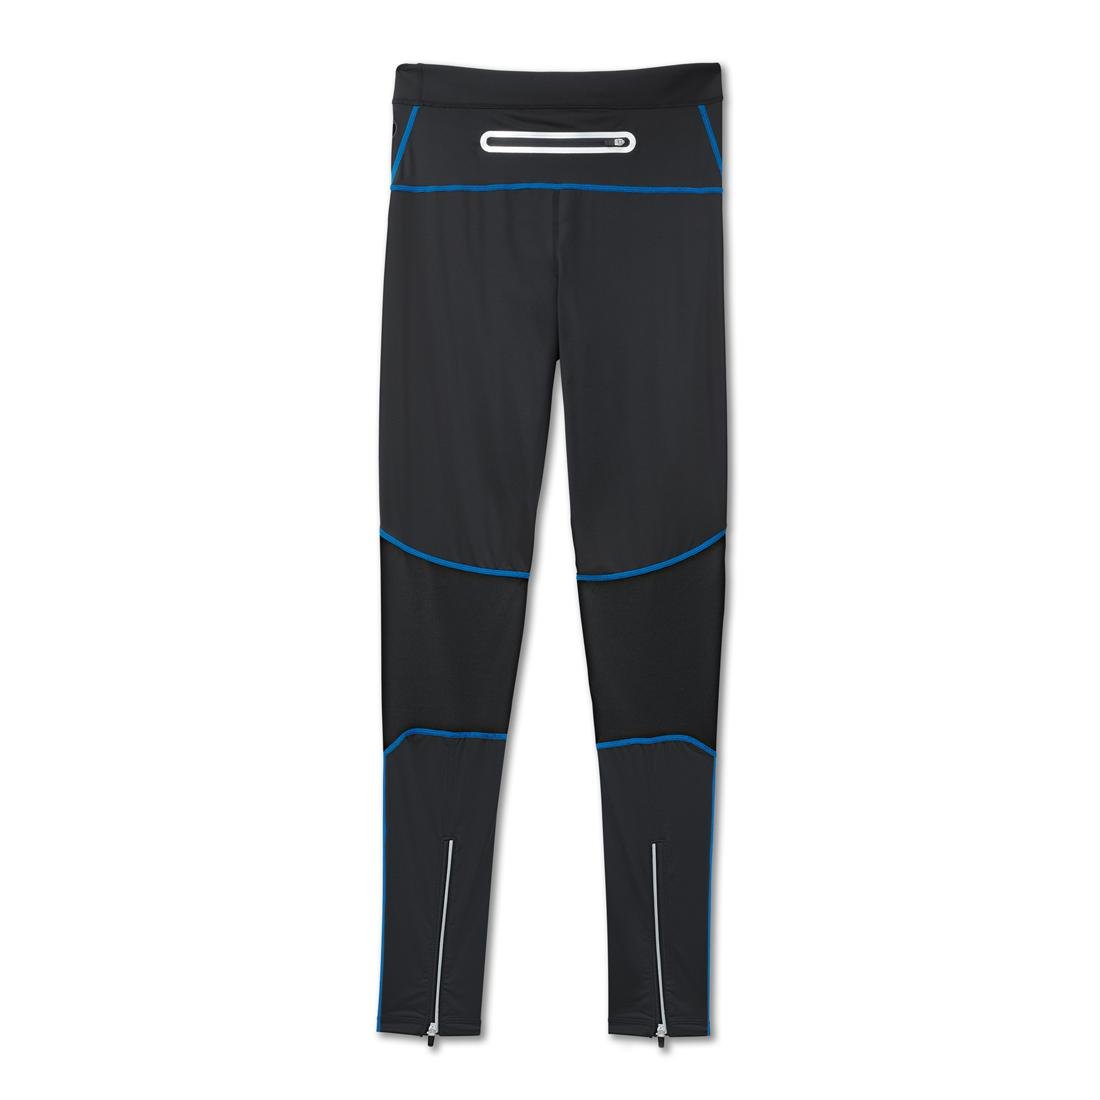 BMW Athletics Men's Long Sport Tights